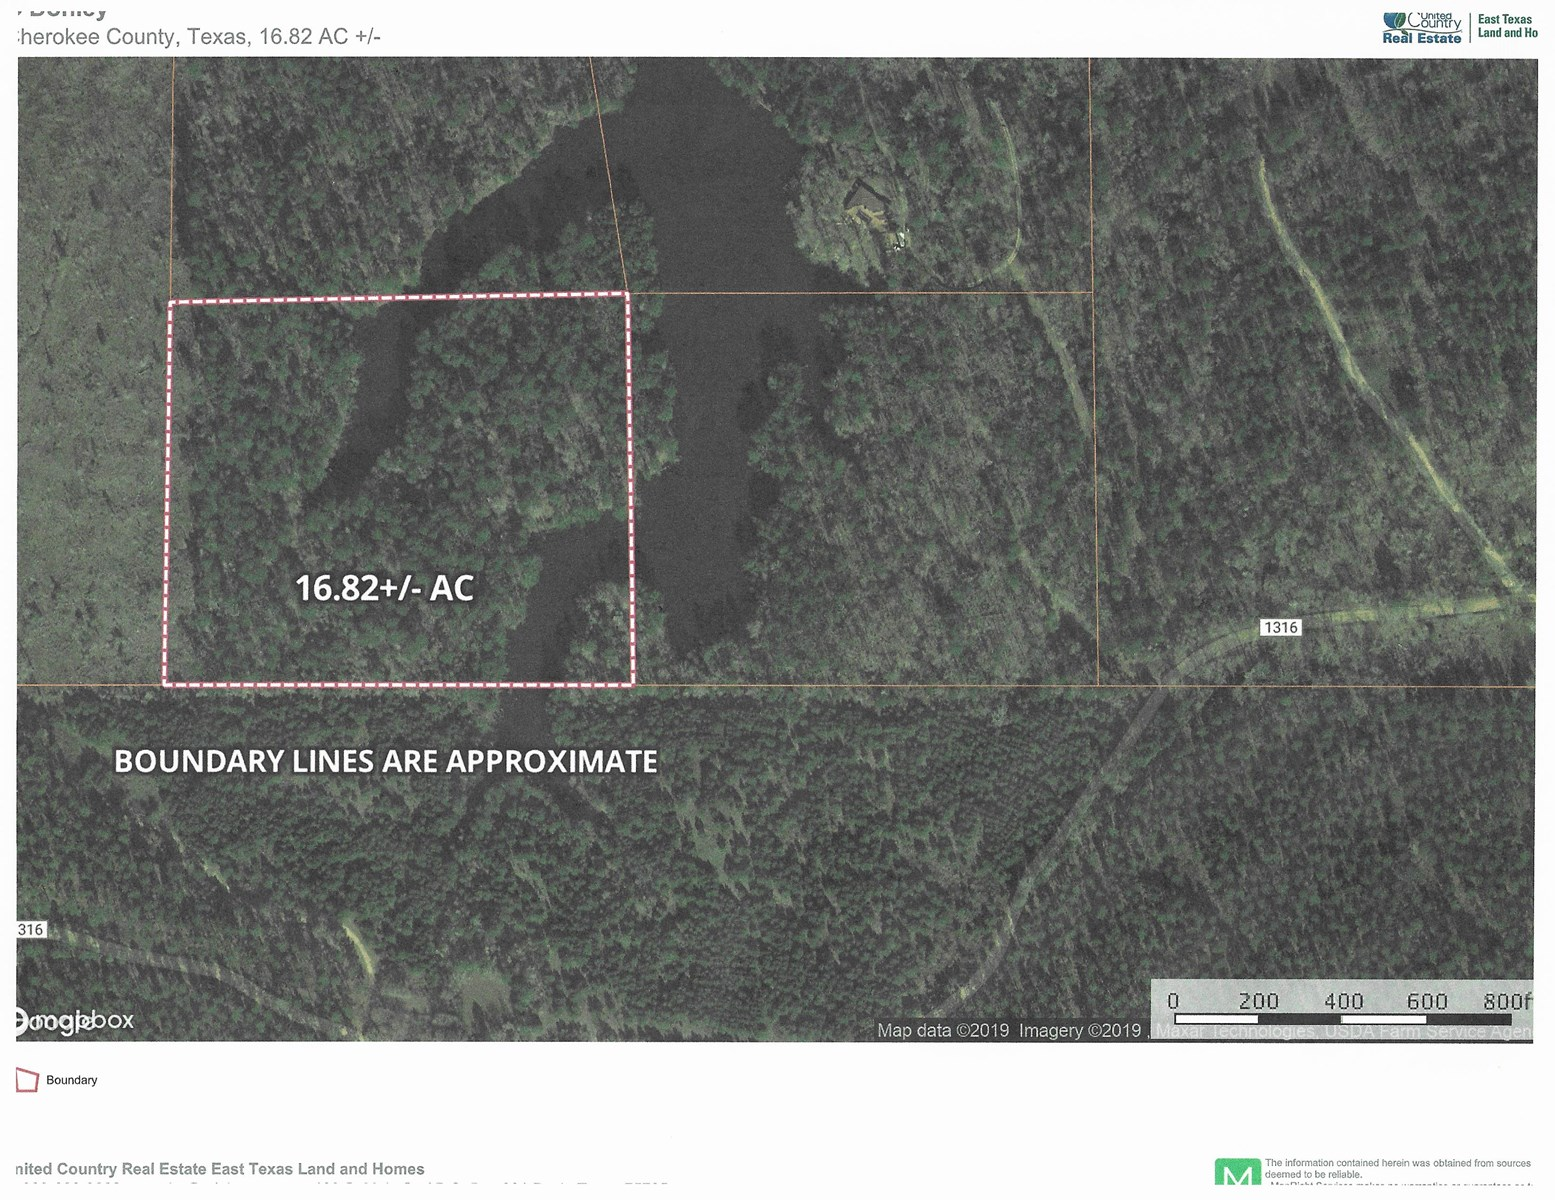 Recreational/Hunting/Fishing/East Texas Land for Sale